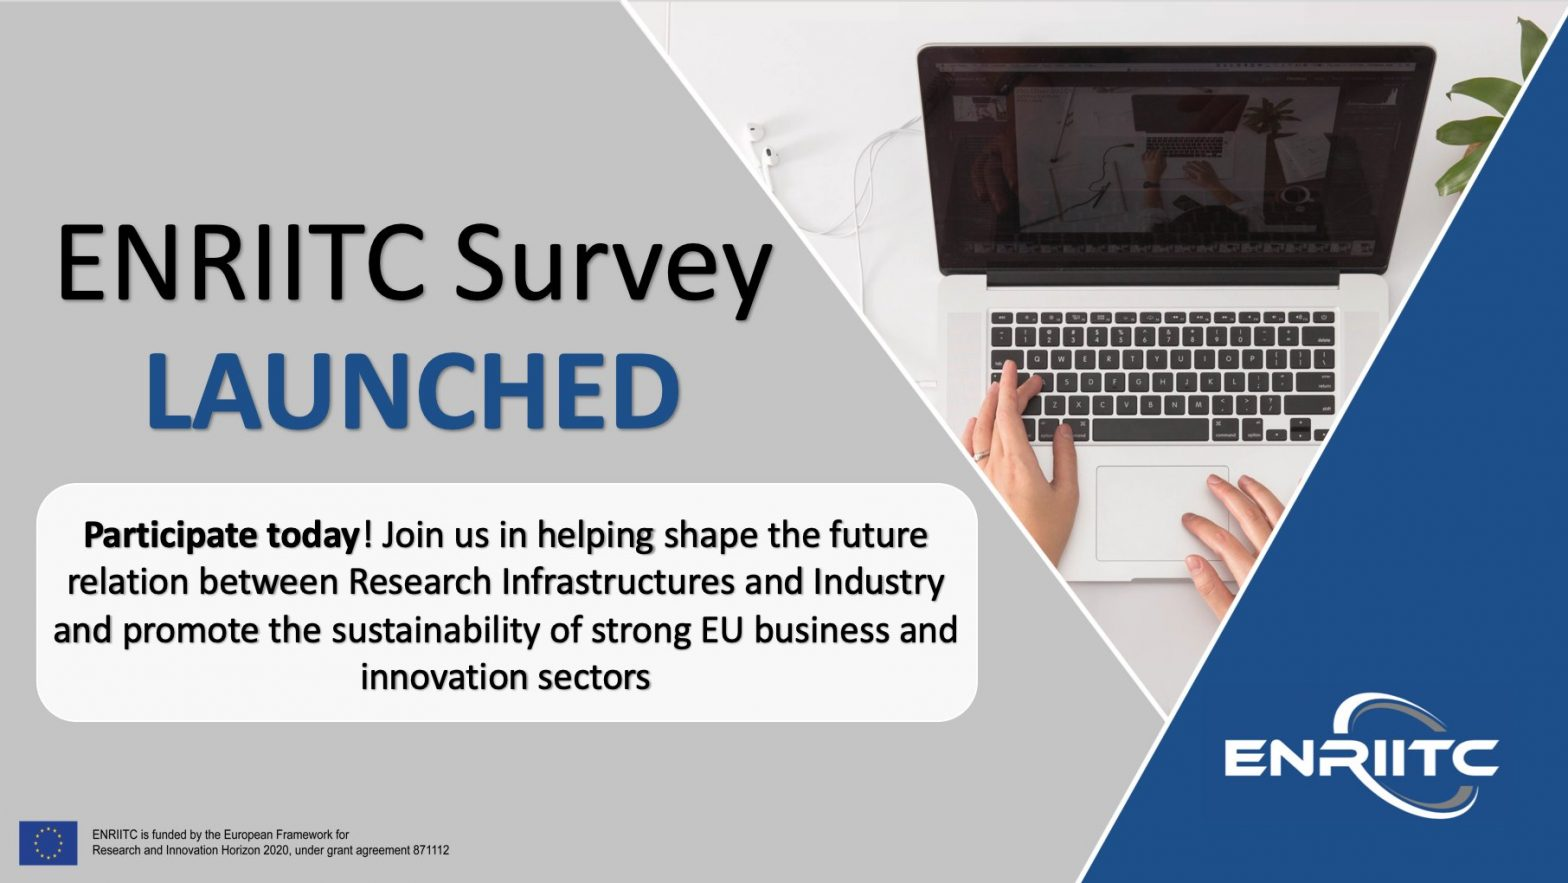 Do you want to improve the way RIs and industry interact? Participate in the ENRIITC surveys